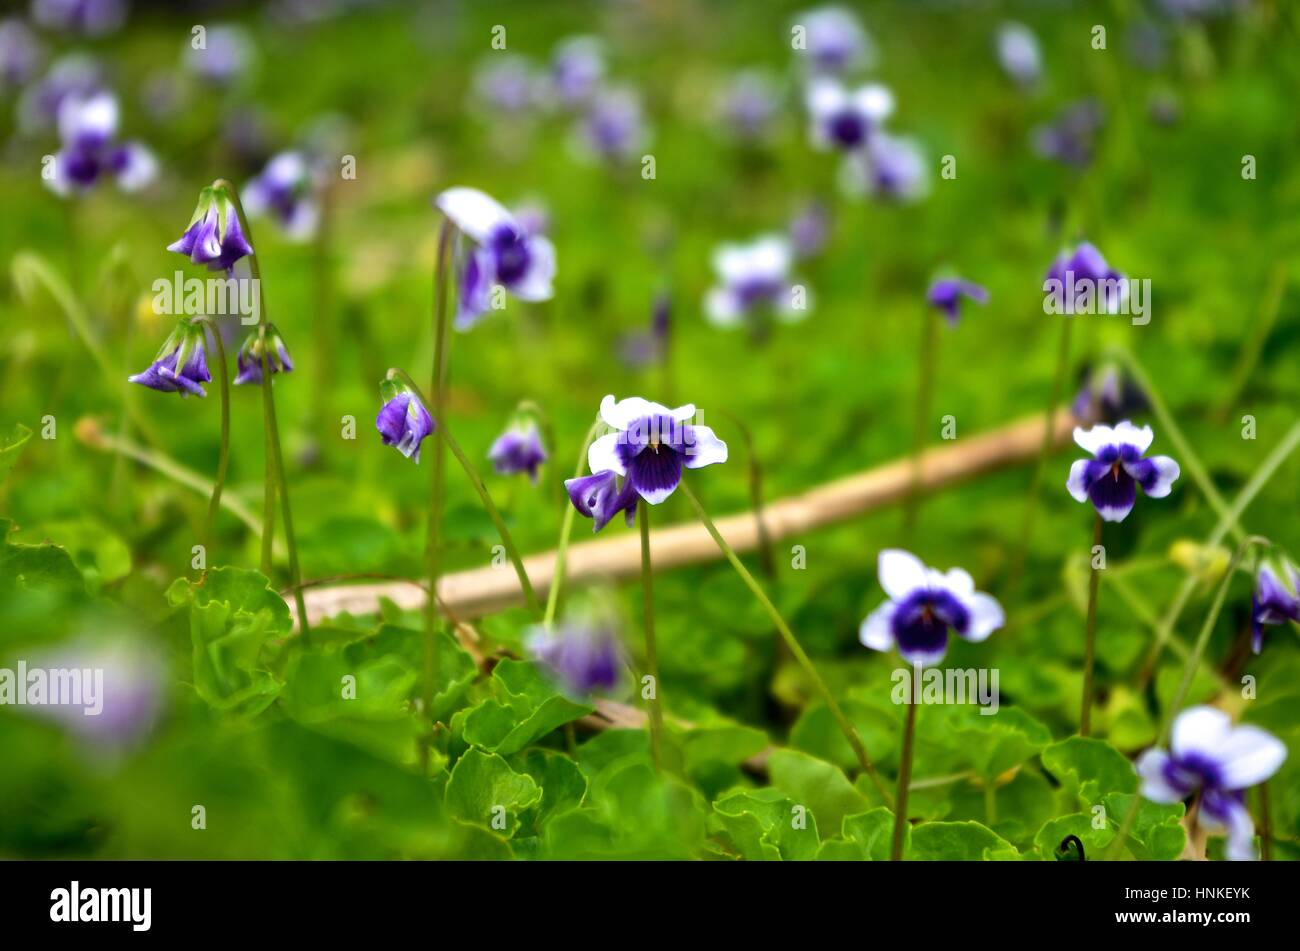 Native violet flowers which are know for cover ground flowers stock native violet flowers which are know for cover ground flowers izmirmasajfo